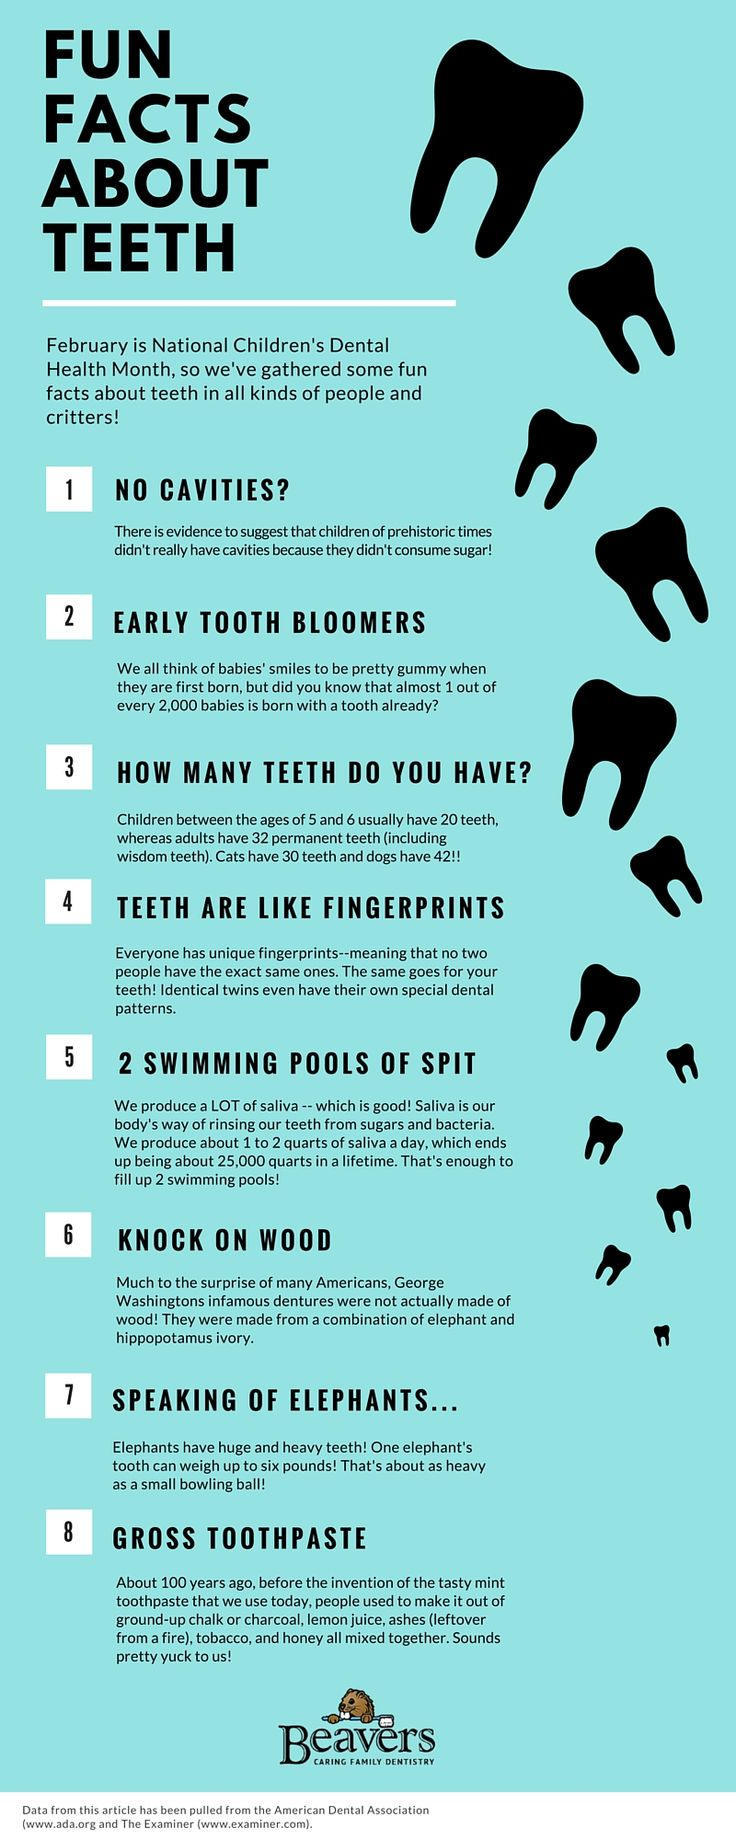 February is National Children's Dental Health Month! Over 60% of the world's youth has at least one cavity that's been left untreated. Let's raise awareness together!  We've gathered some fun facts about teeth to get your kids inspired to brush and floss! http://tmiky.com/pinterest